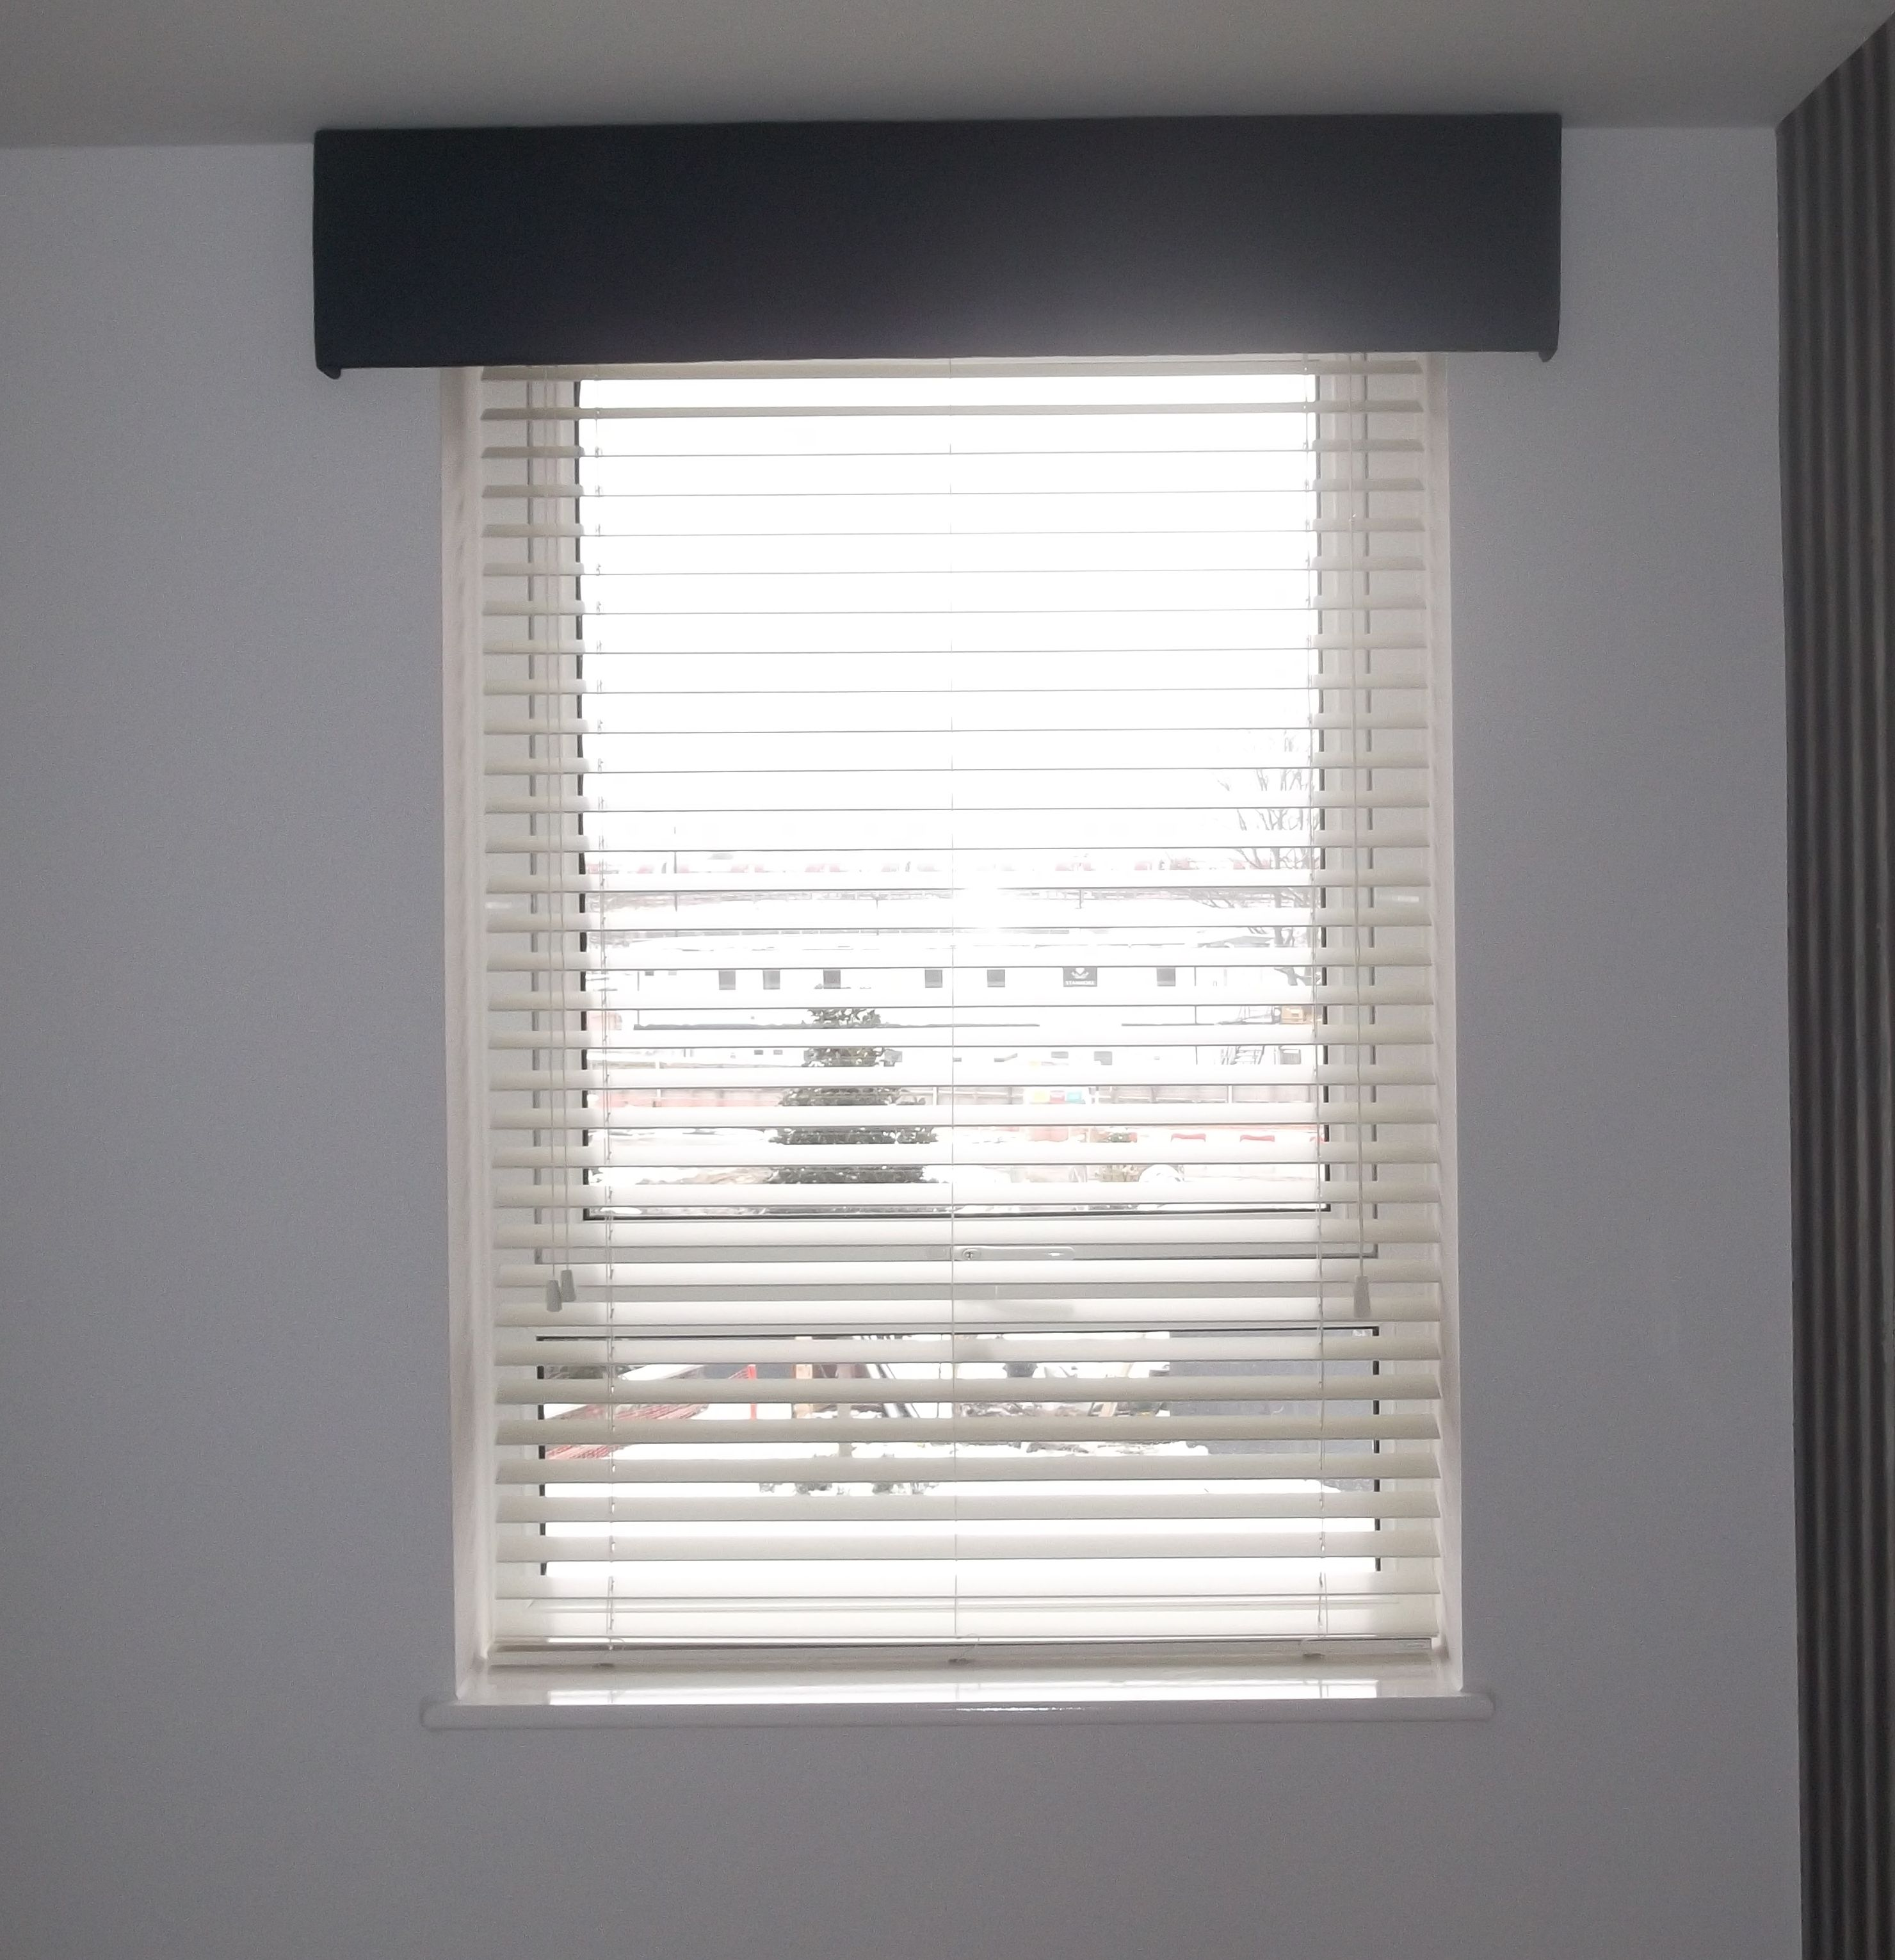 Venetian Blind With Pelmet Blinds Venetian Blinds Blinds For Windows